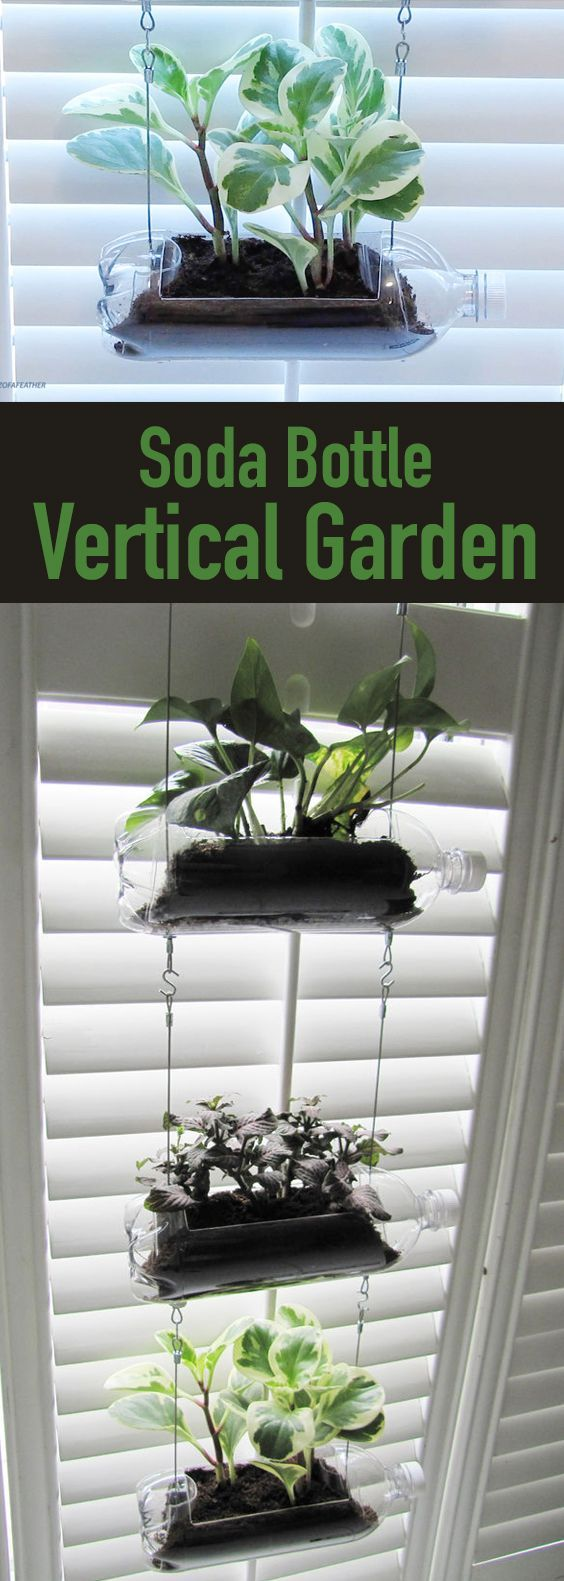 Introduce a cheap and cheerful hanging system to brighten up your introduce a cheap and cheerful hanging system to brighten up your indoor space with plants workwithnaturefo